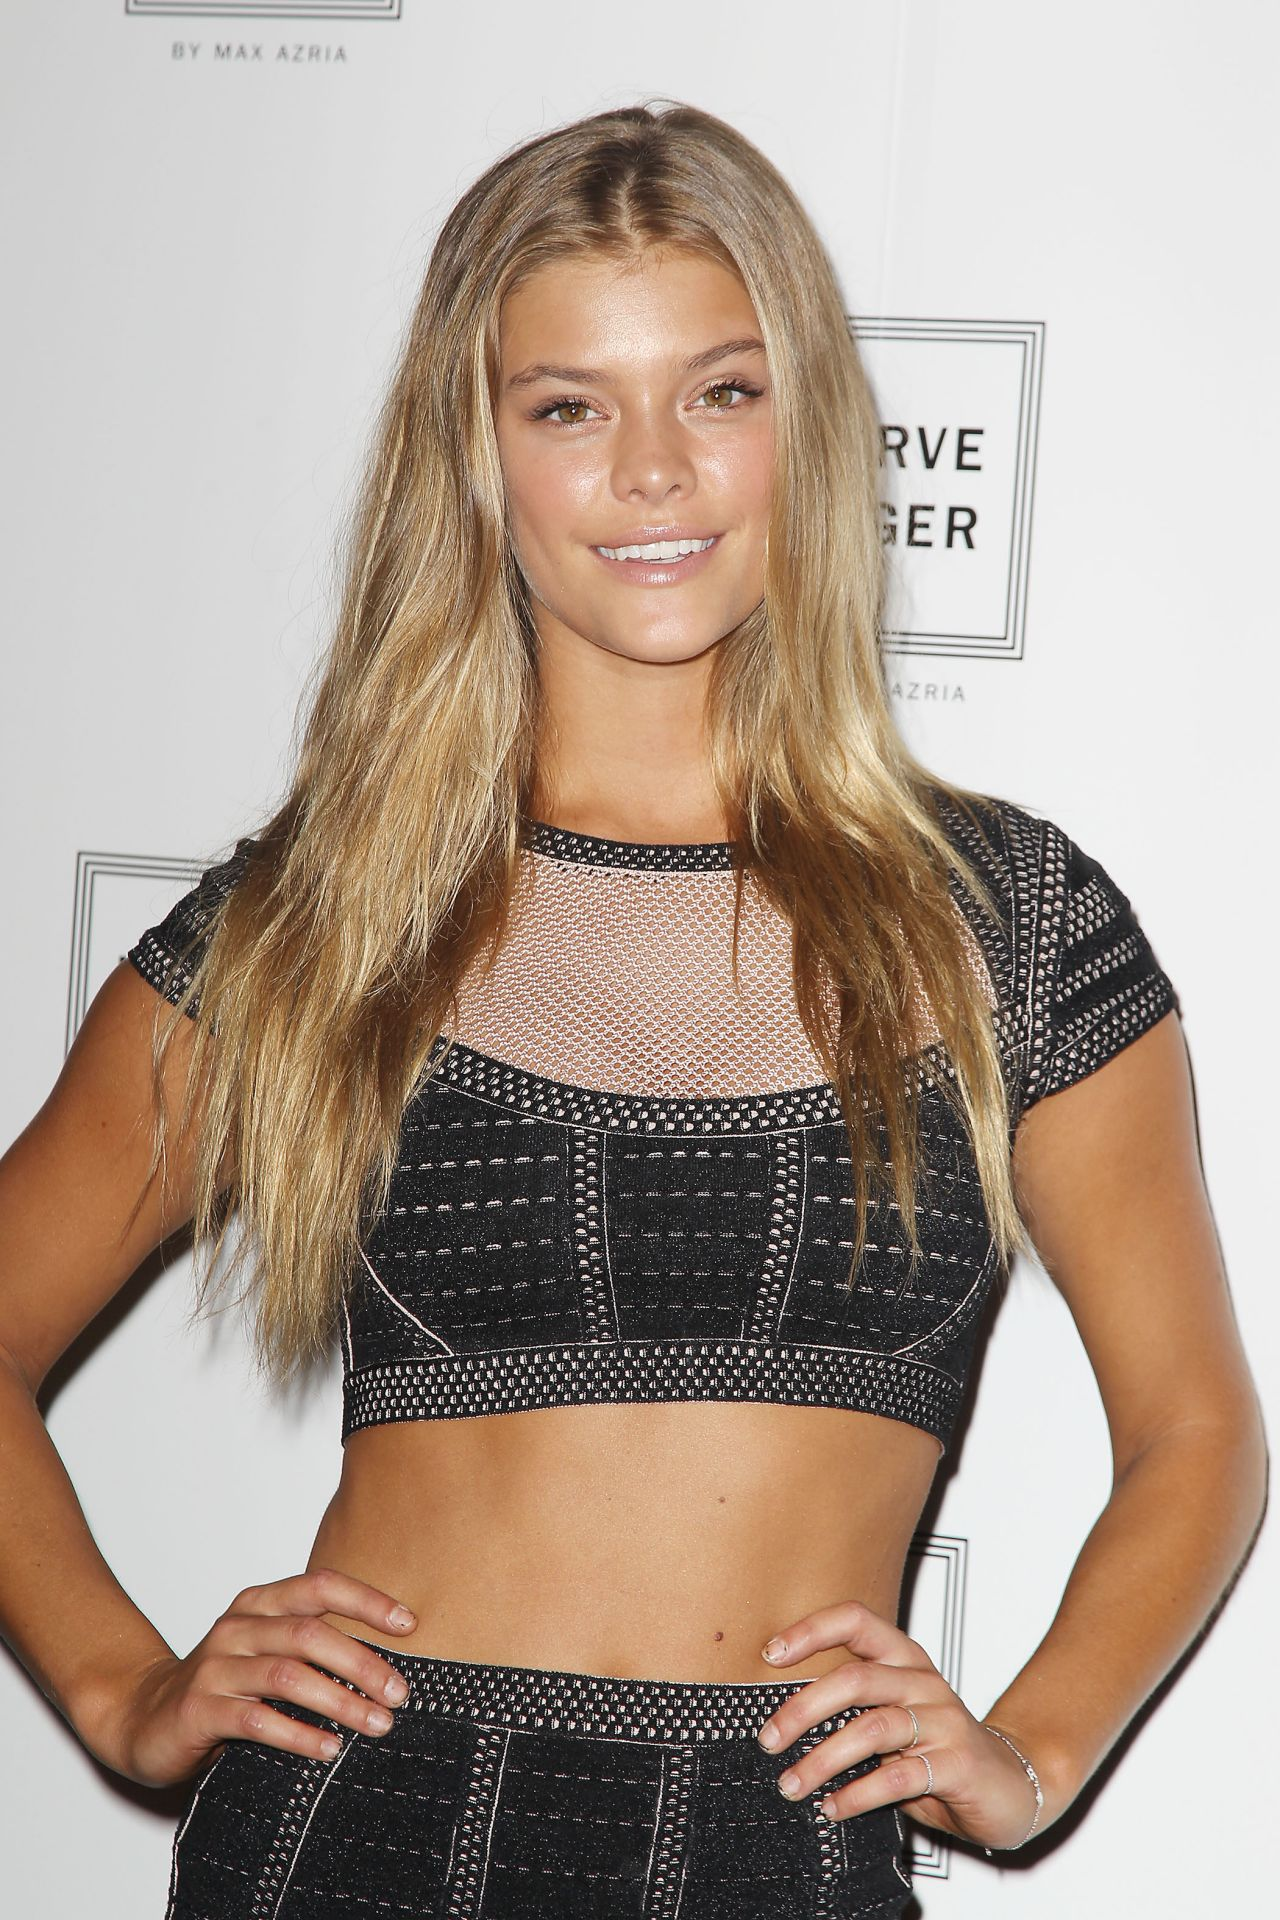 Nina Agdal - Herve Leger By Max Azria Fashion Show in New York City – September 2014